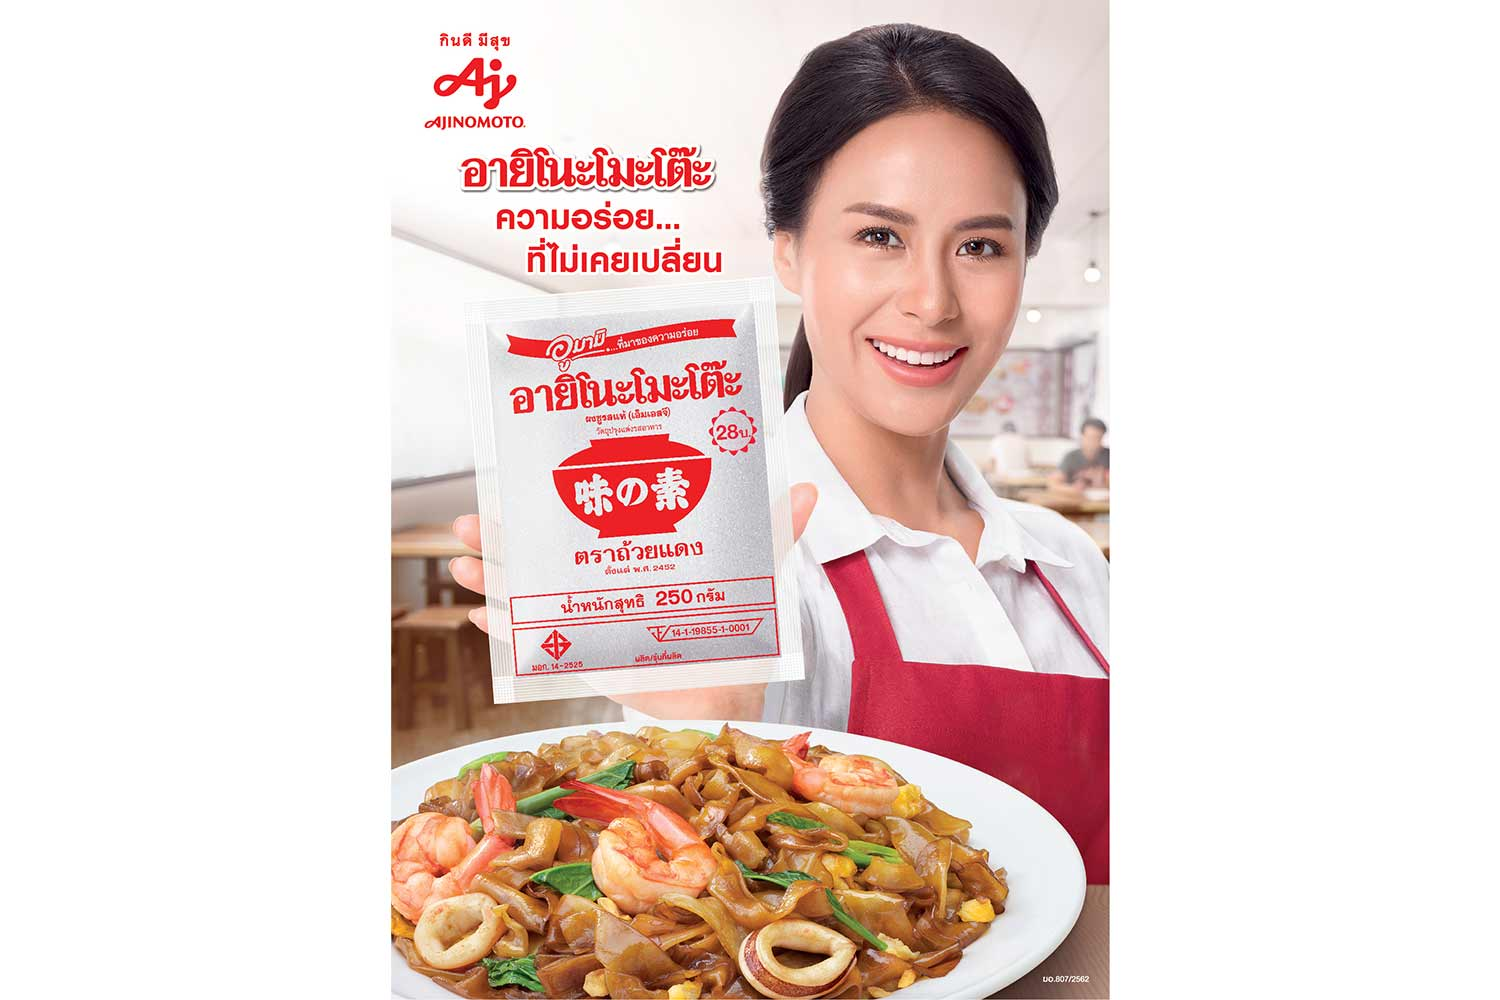 """AJI-NO-MOTO introduces new TVC with """"Rodmay-Khanungnij"""" the first product presenter"""